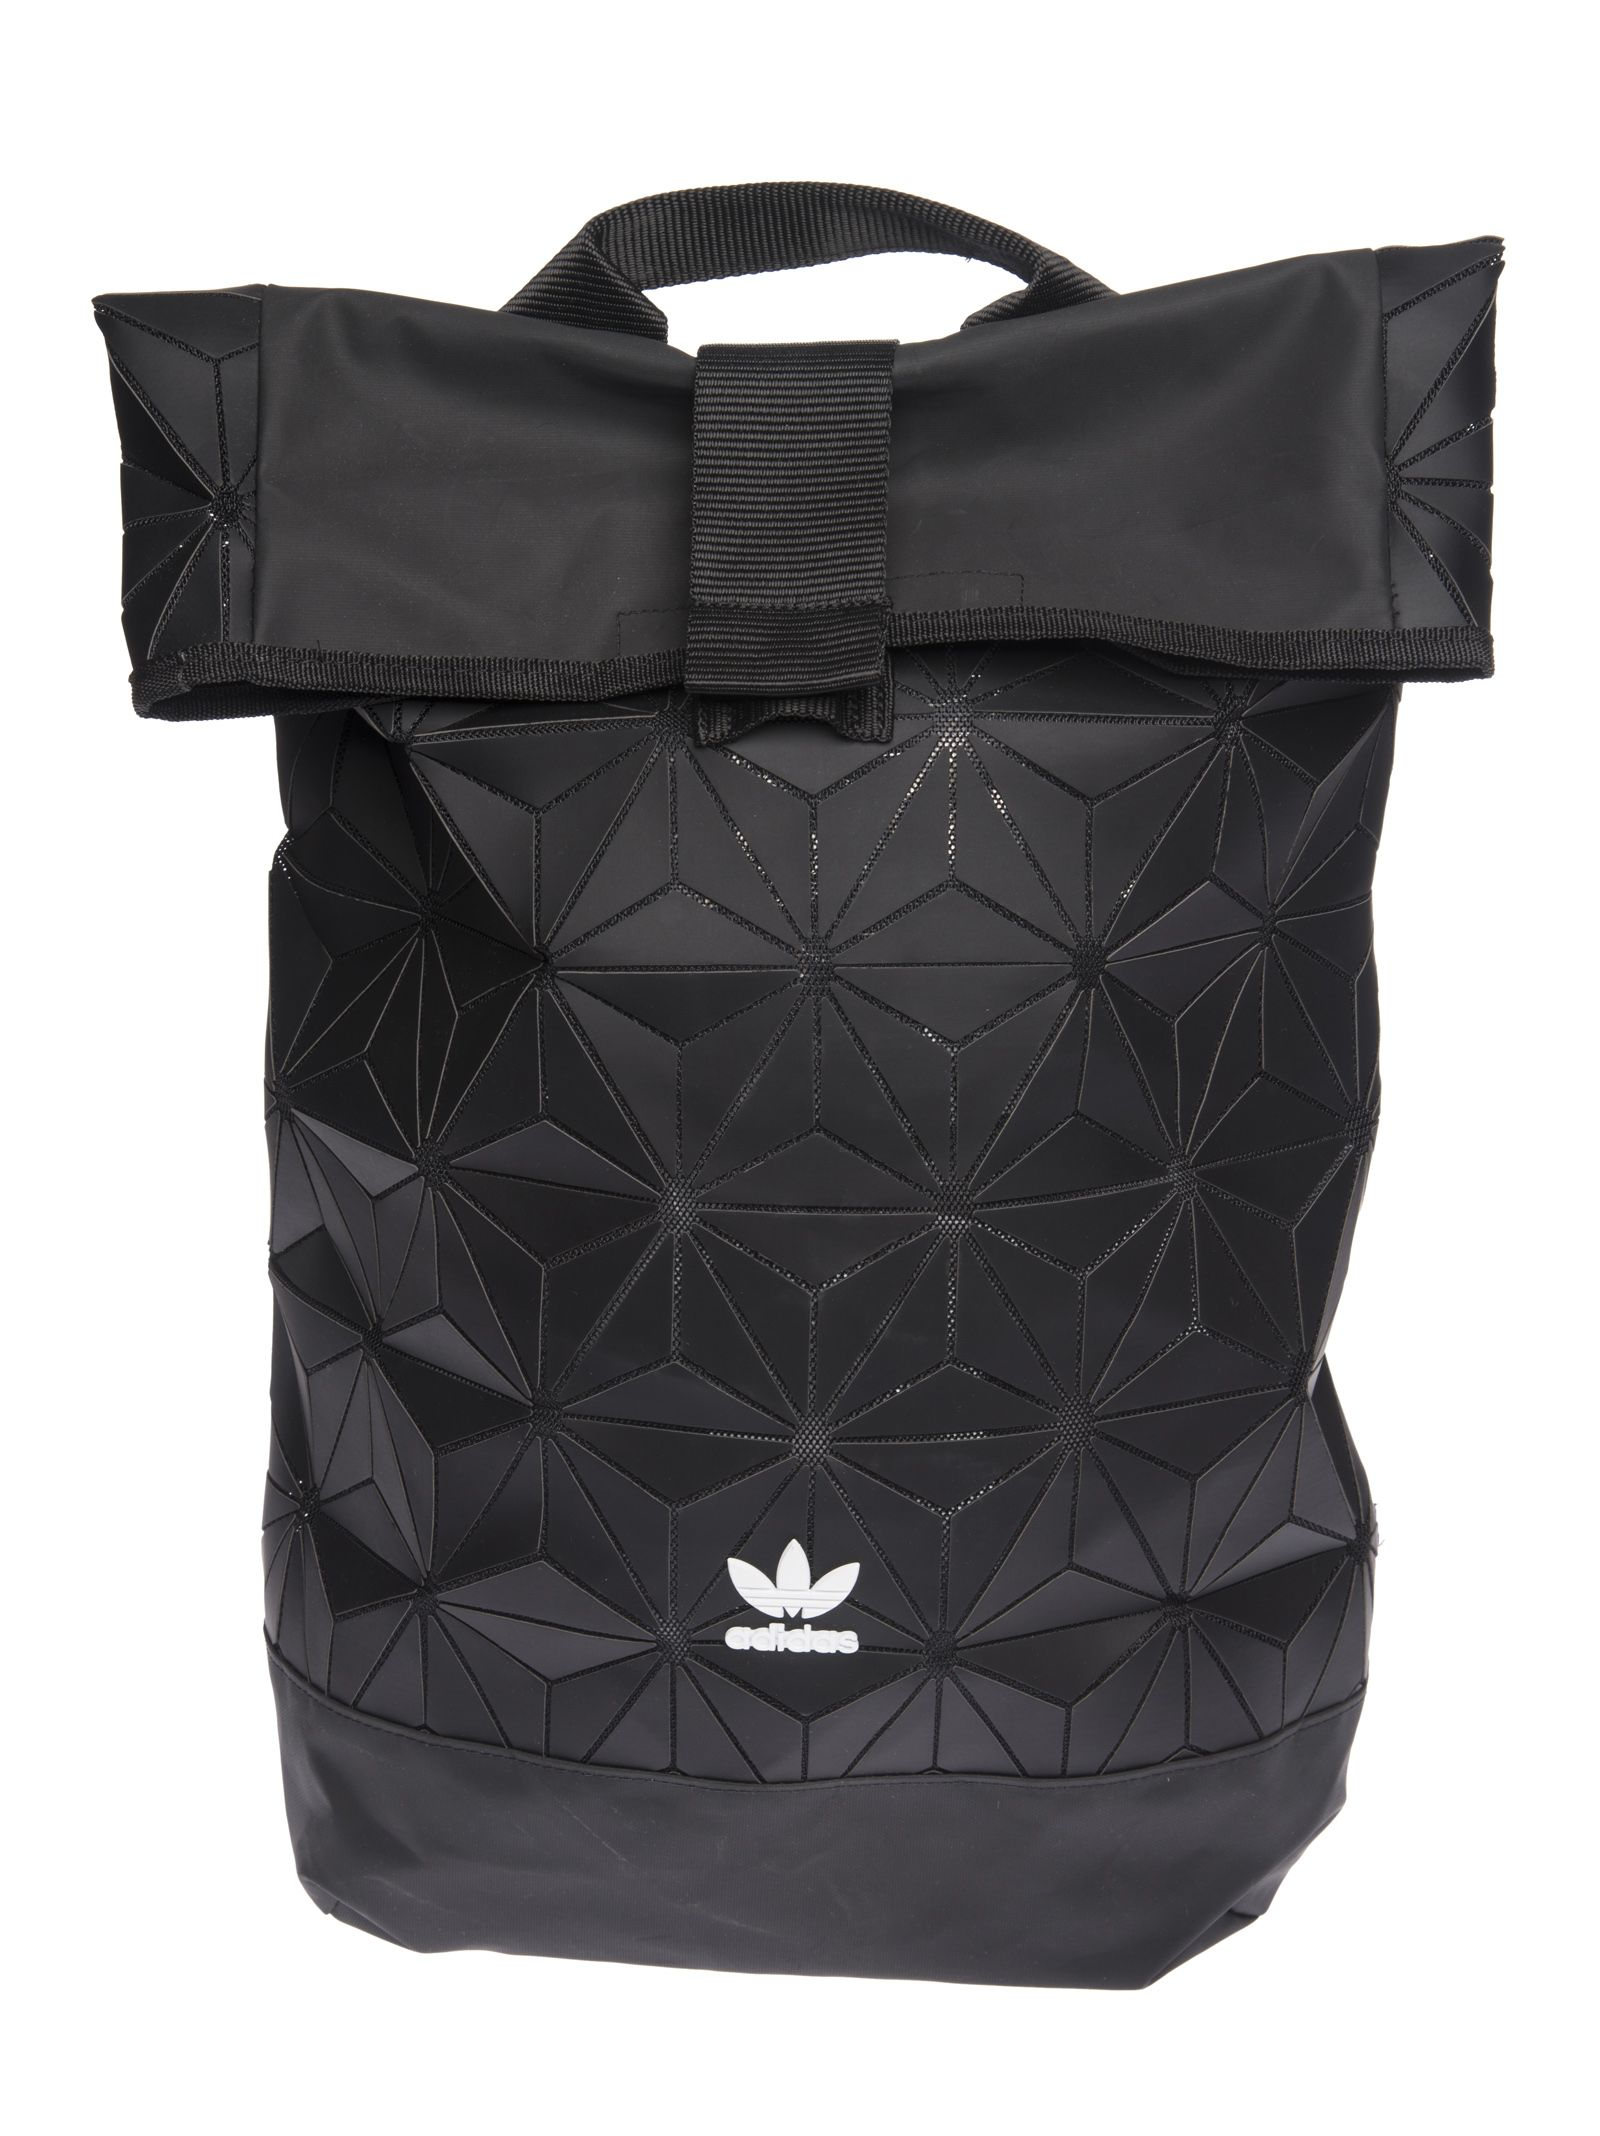 b3d675548cac Adidas Originals Adidas Originals Urban Backpack - Black - 4114447 ...